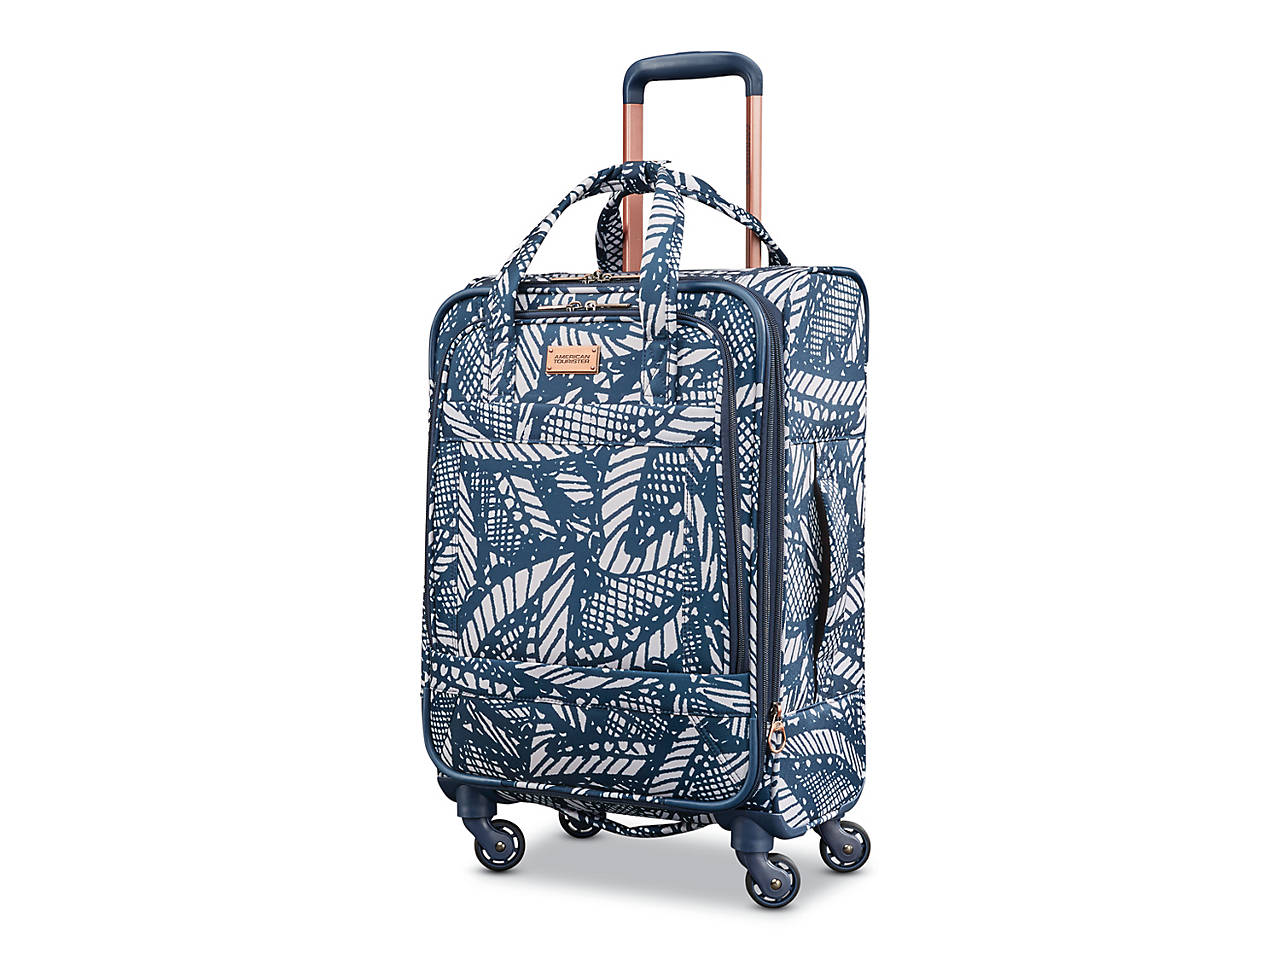 cb3dd4aa3202 Belle Voyage 21-Inch Carry-On Luggage